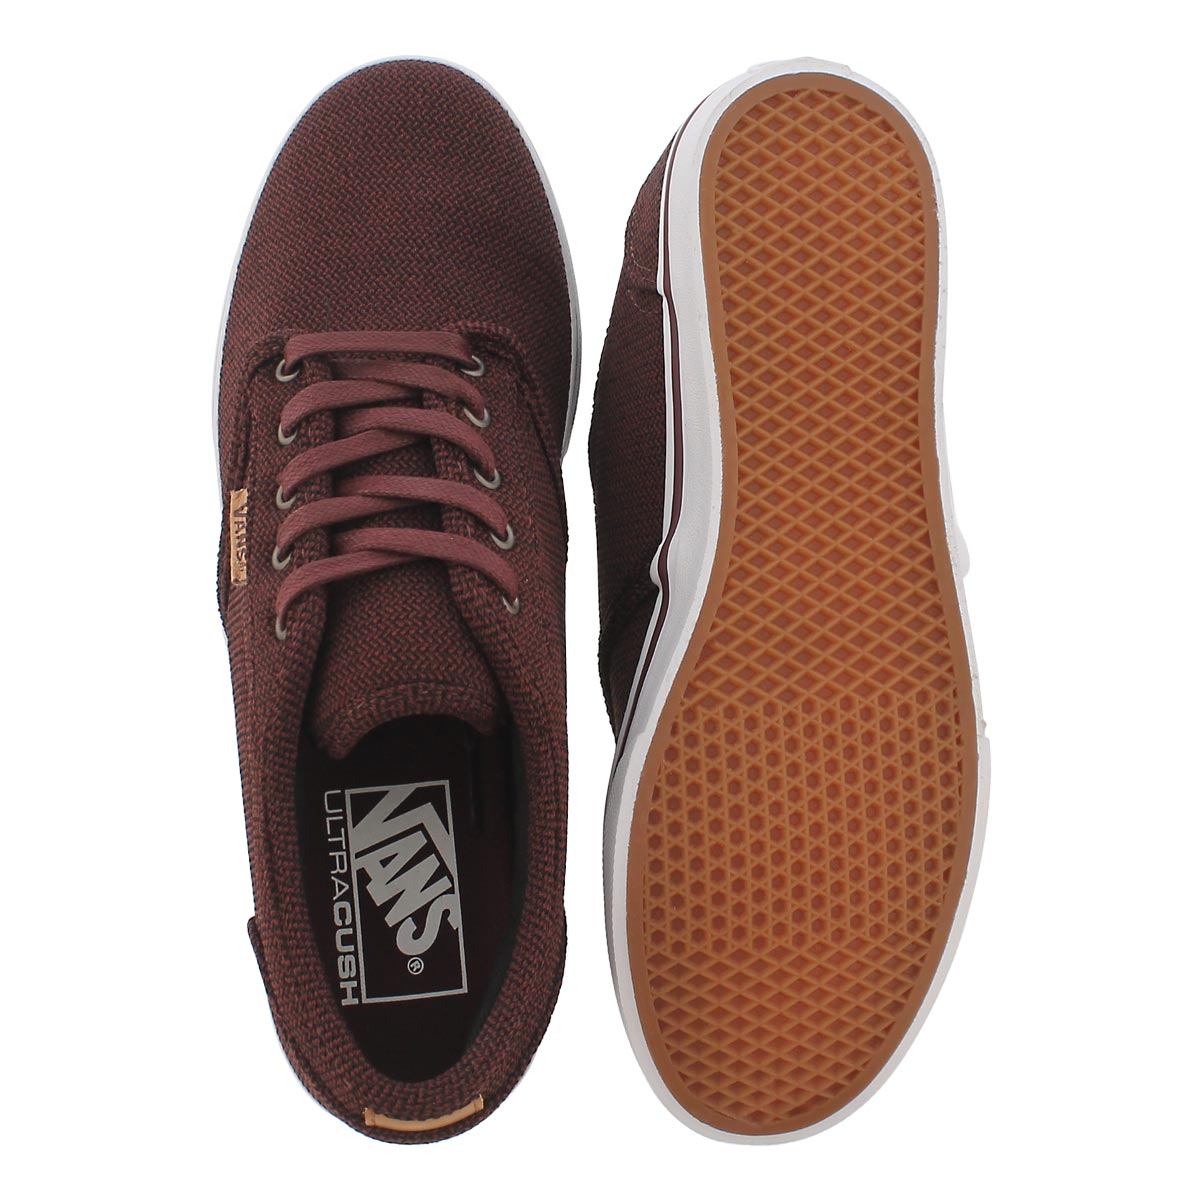 Lds Atwood Low DX burg lace up sneaker